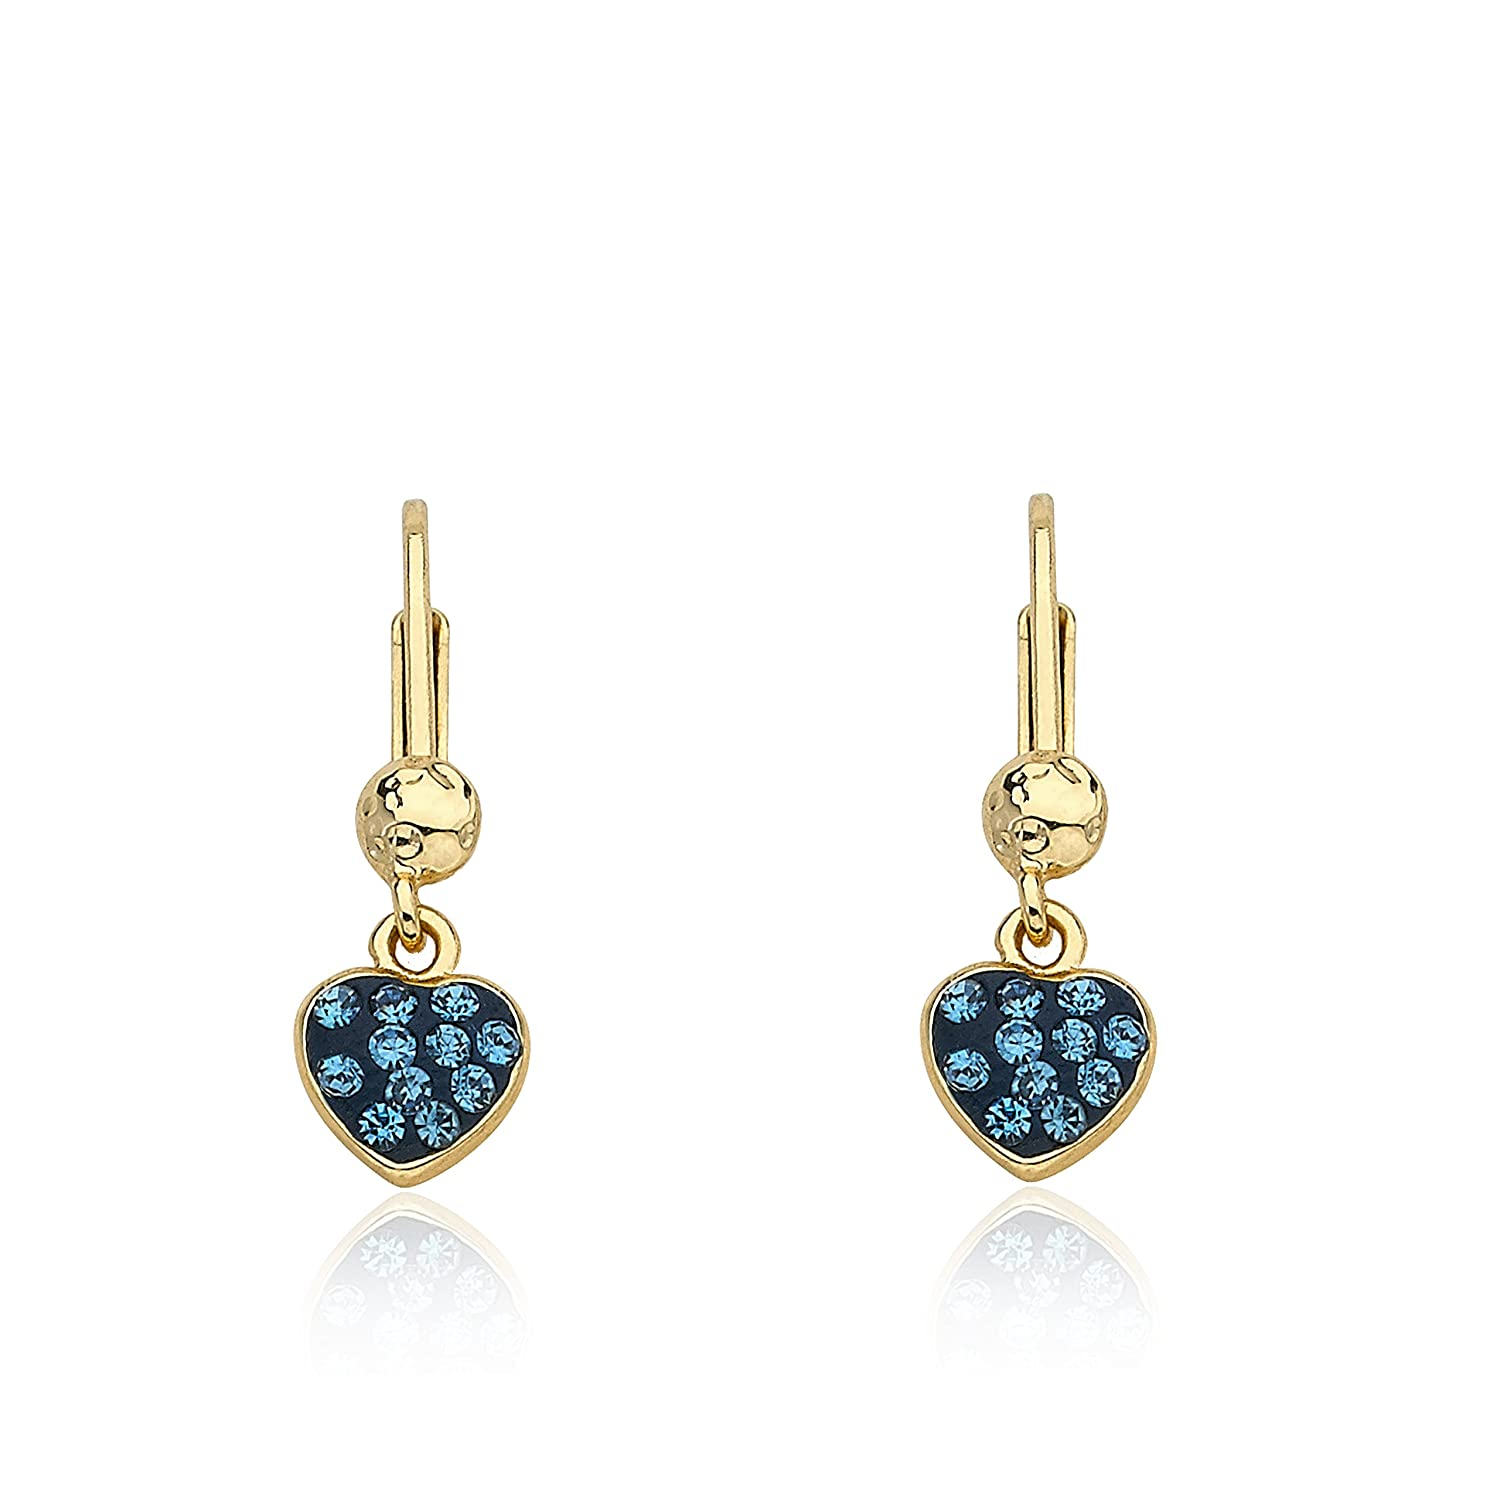 Molly Glitz Heart of Jewels 14k Gold-Plated Blue /& Crystal Heart Leverback Dangle Earring